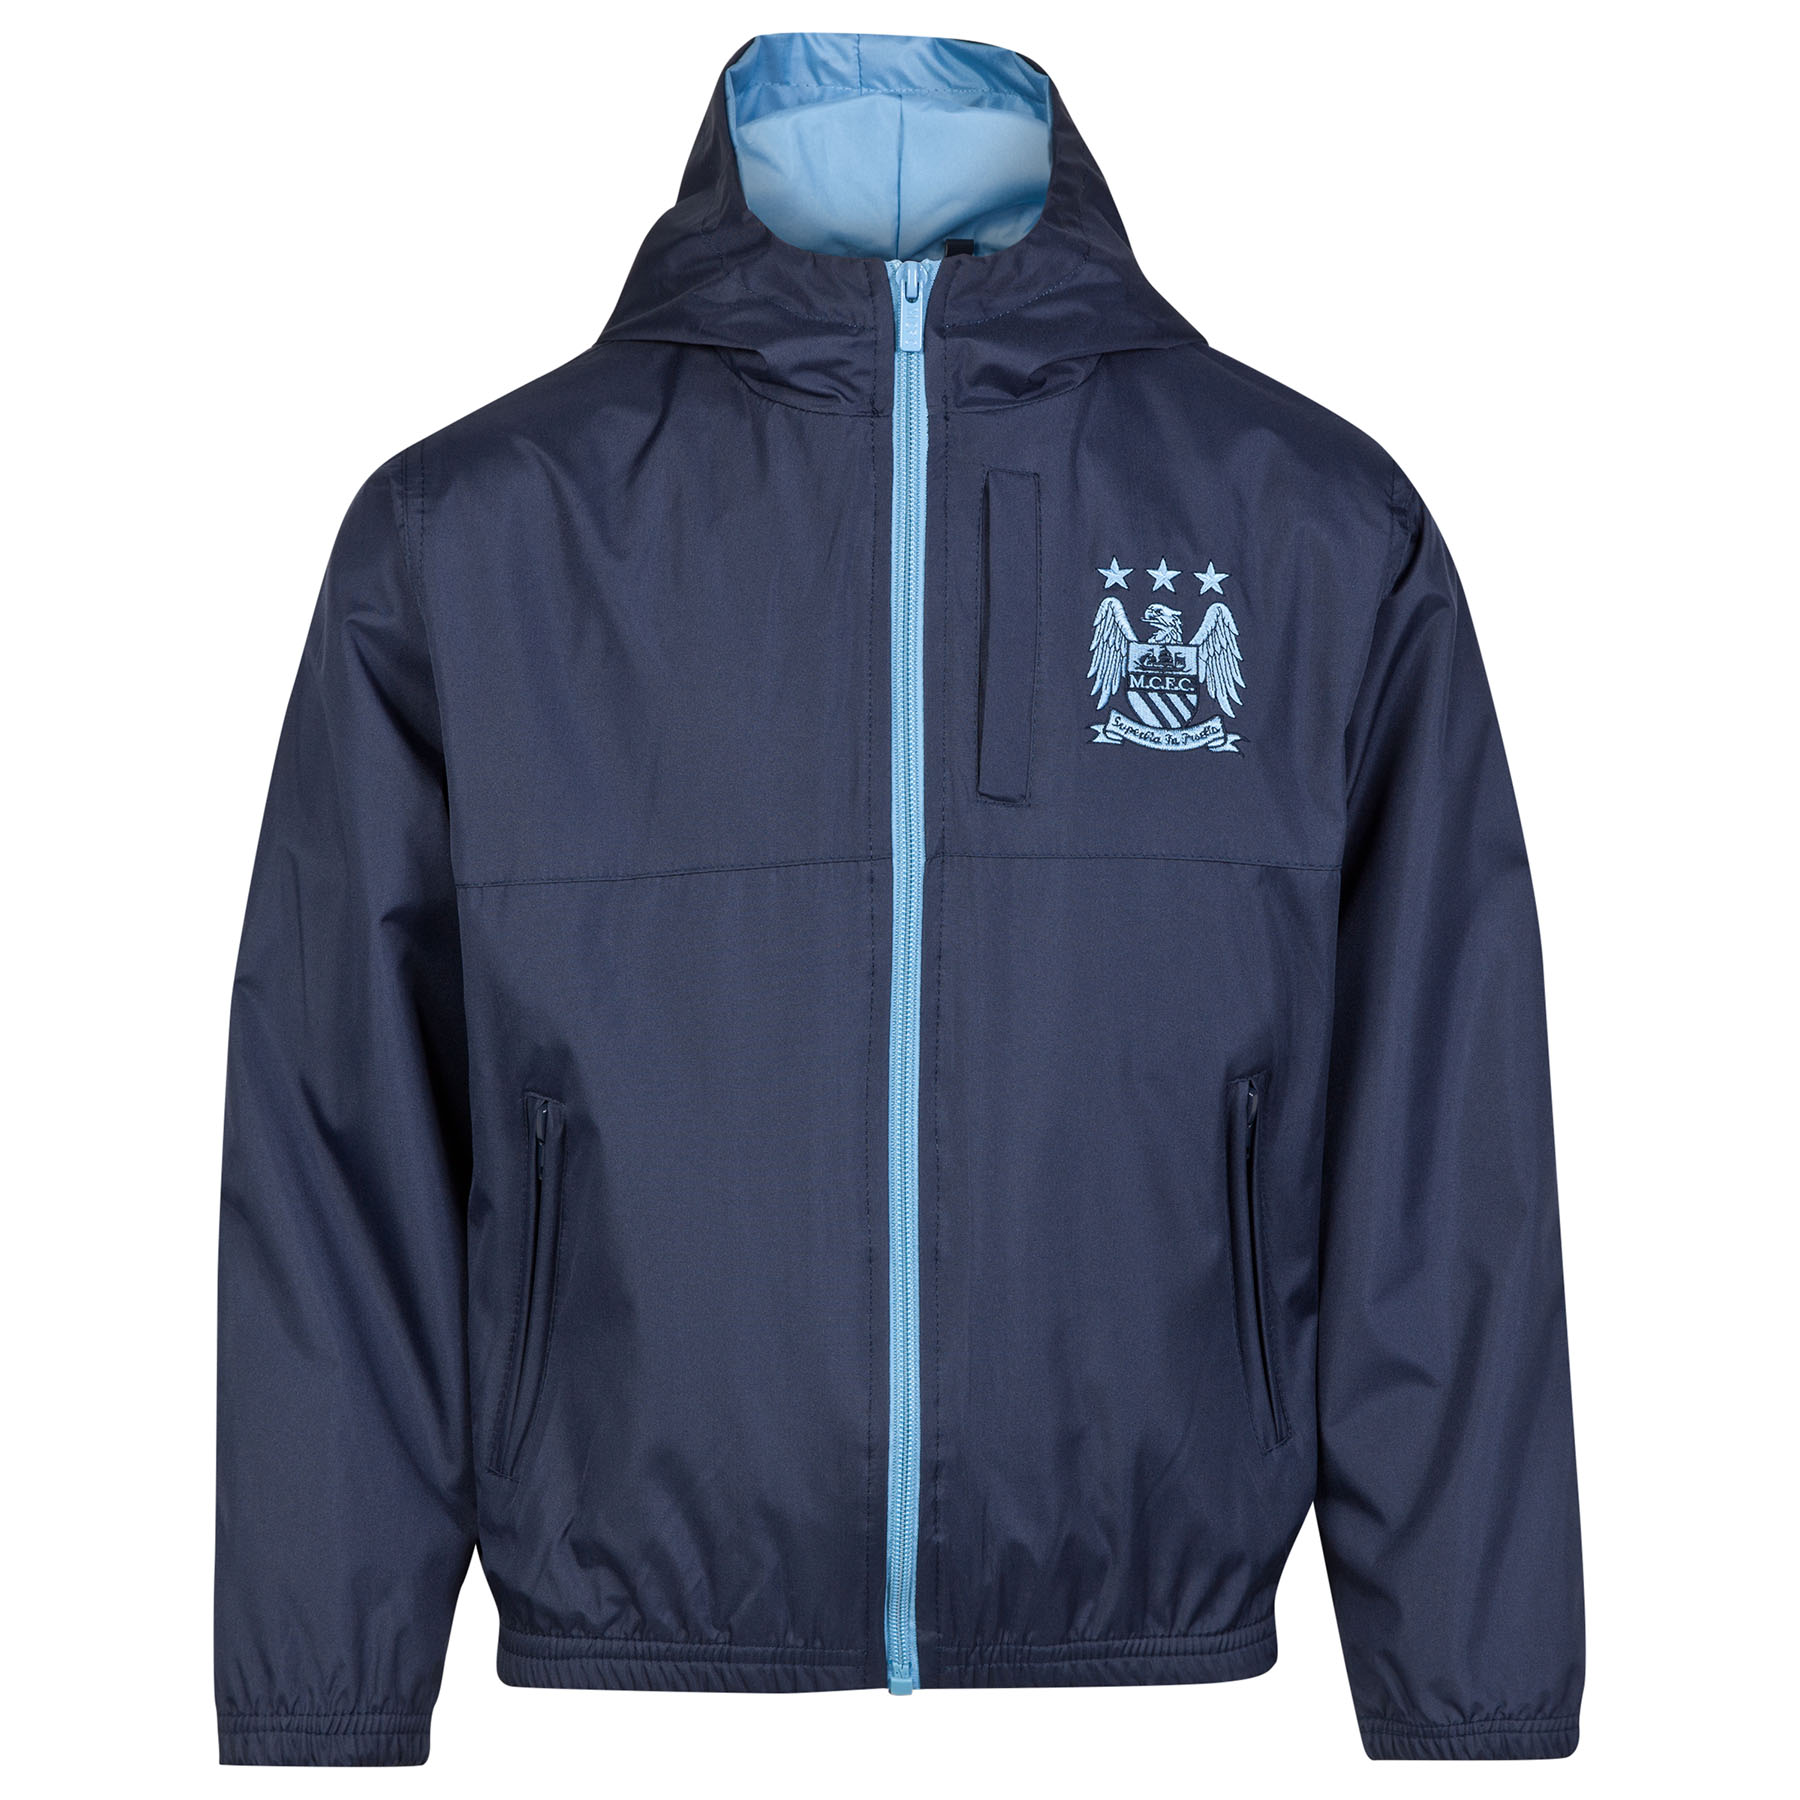 Manchester City Classic Shower Jacket - Navy - Older Boys